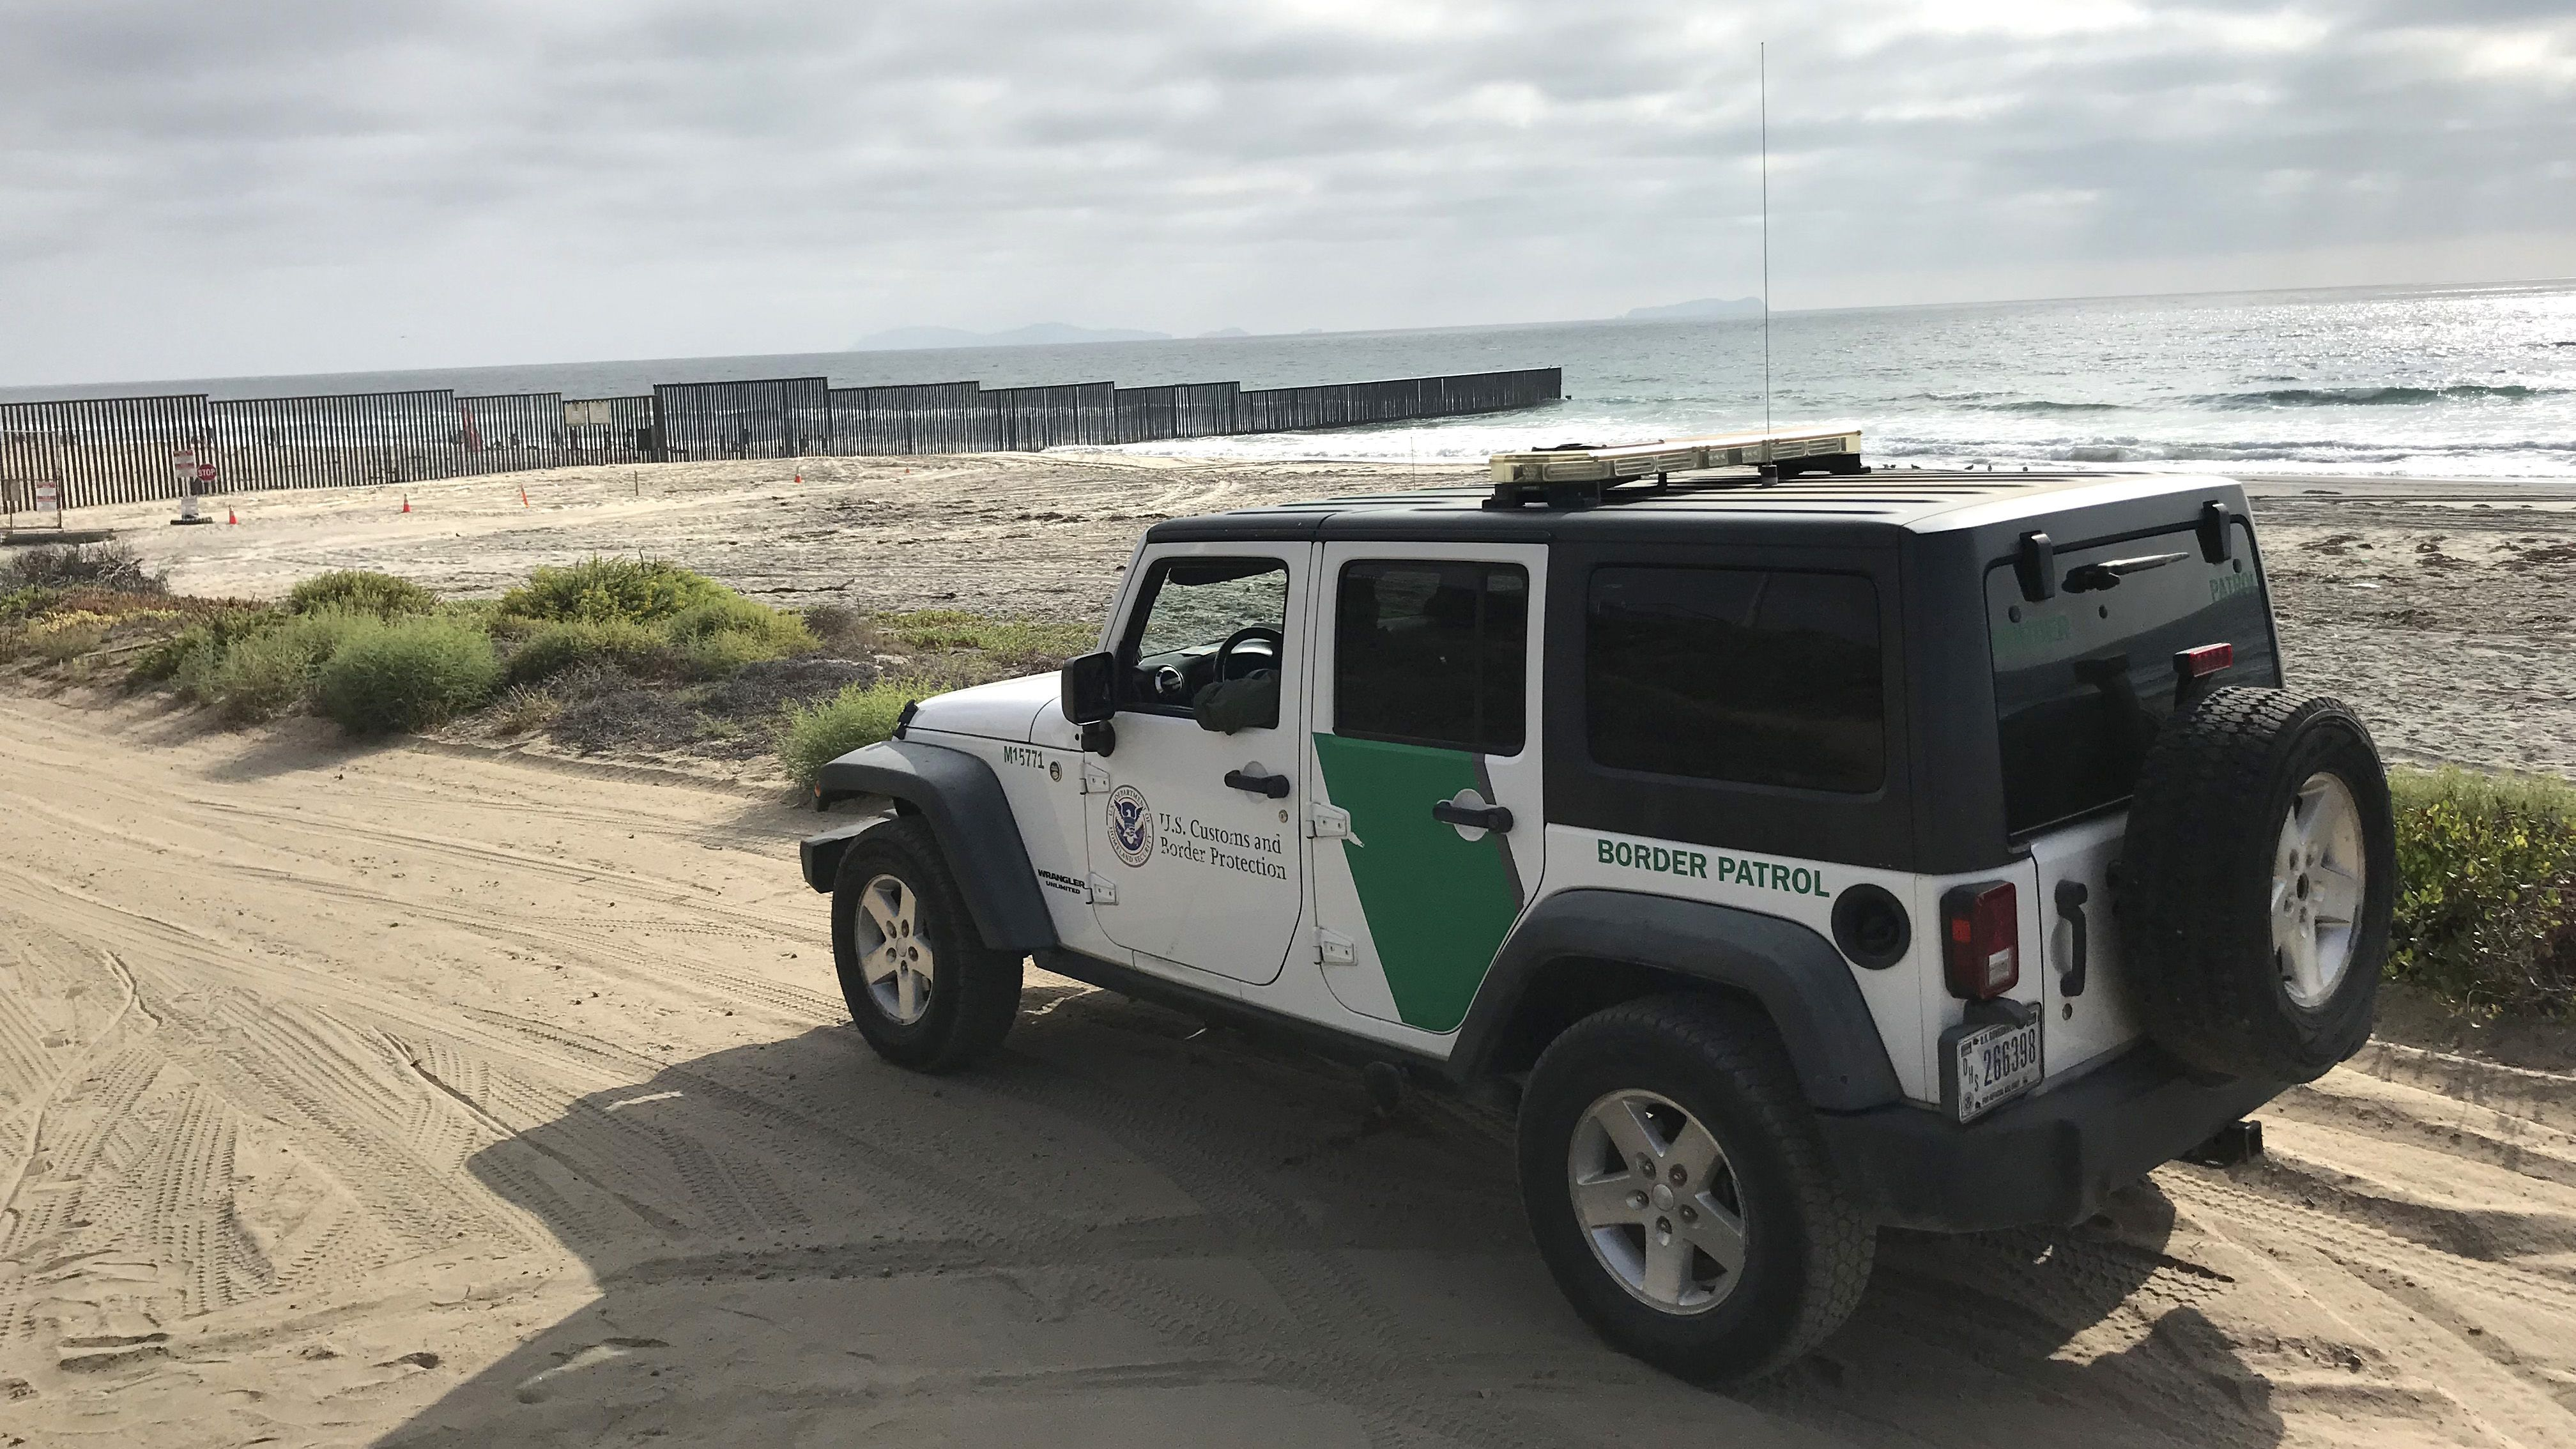 Jeep Border Patrol Borderpatrol Jeep Jeeplife Wrangler